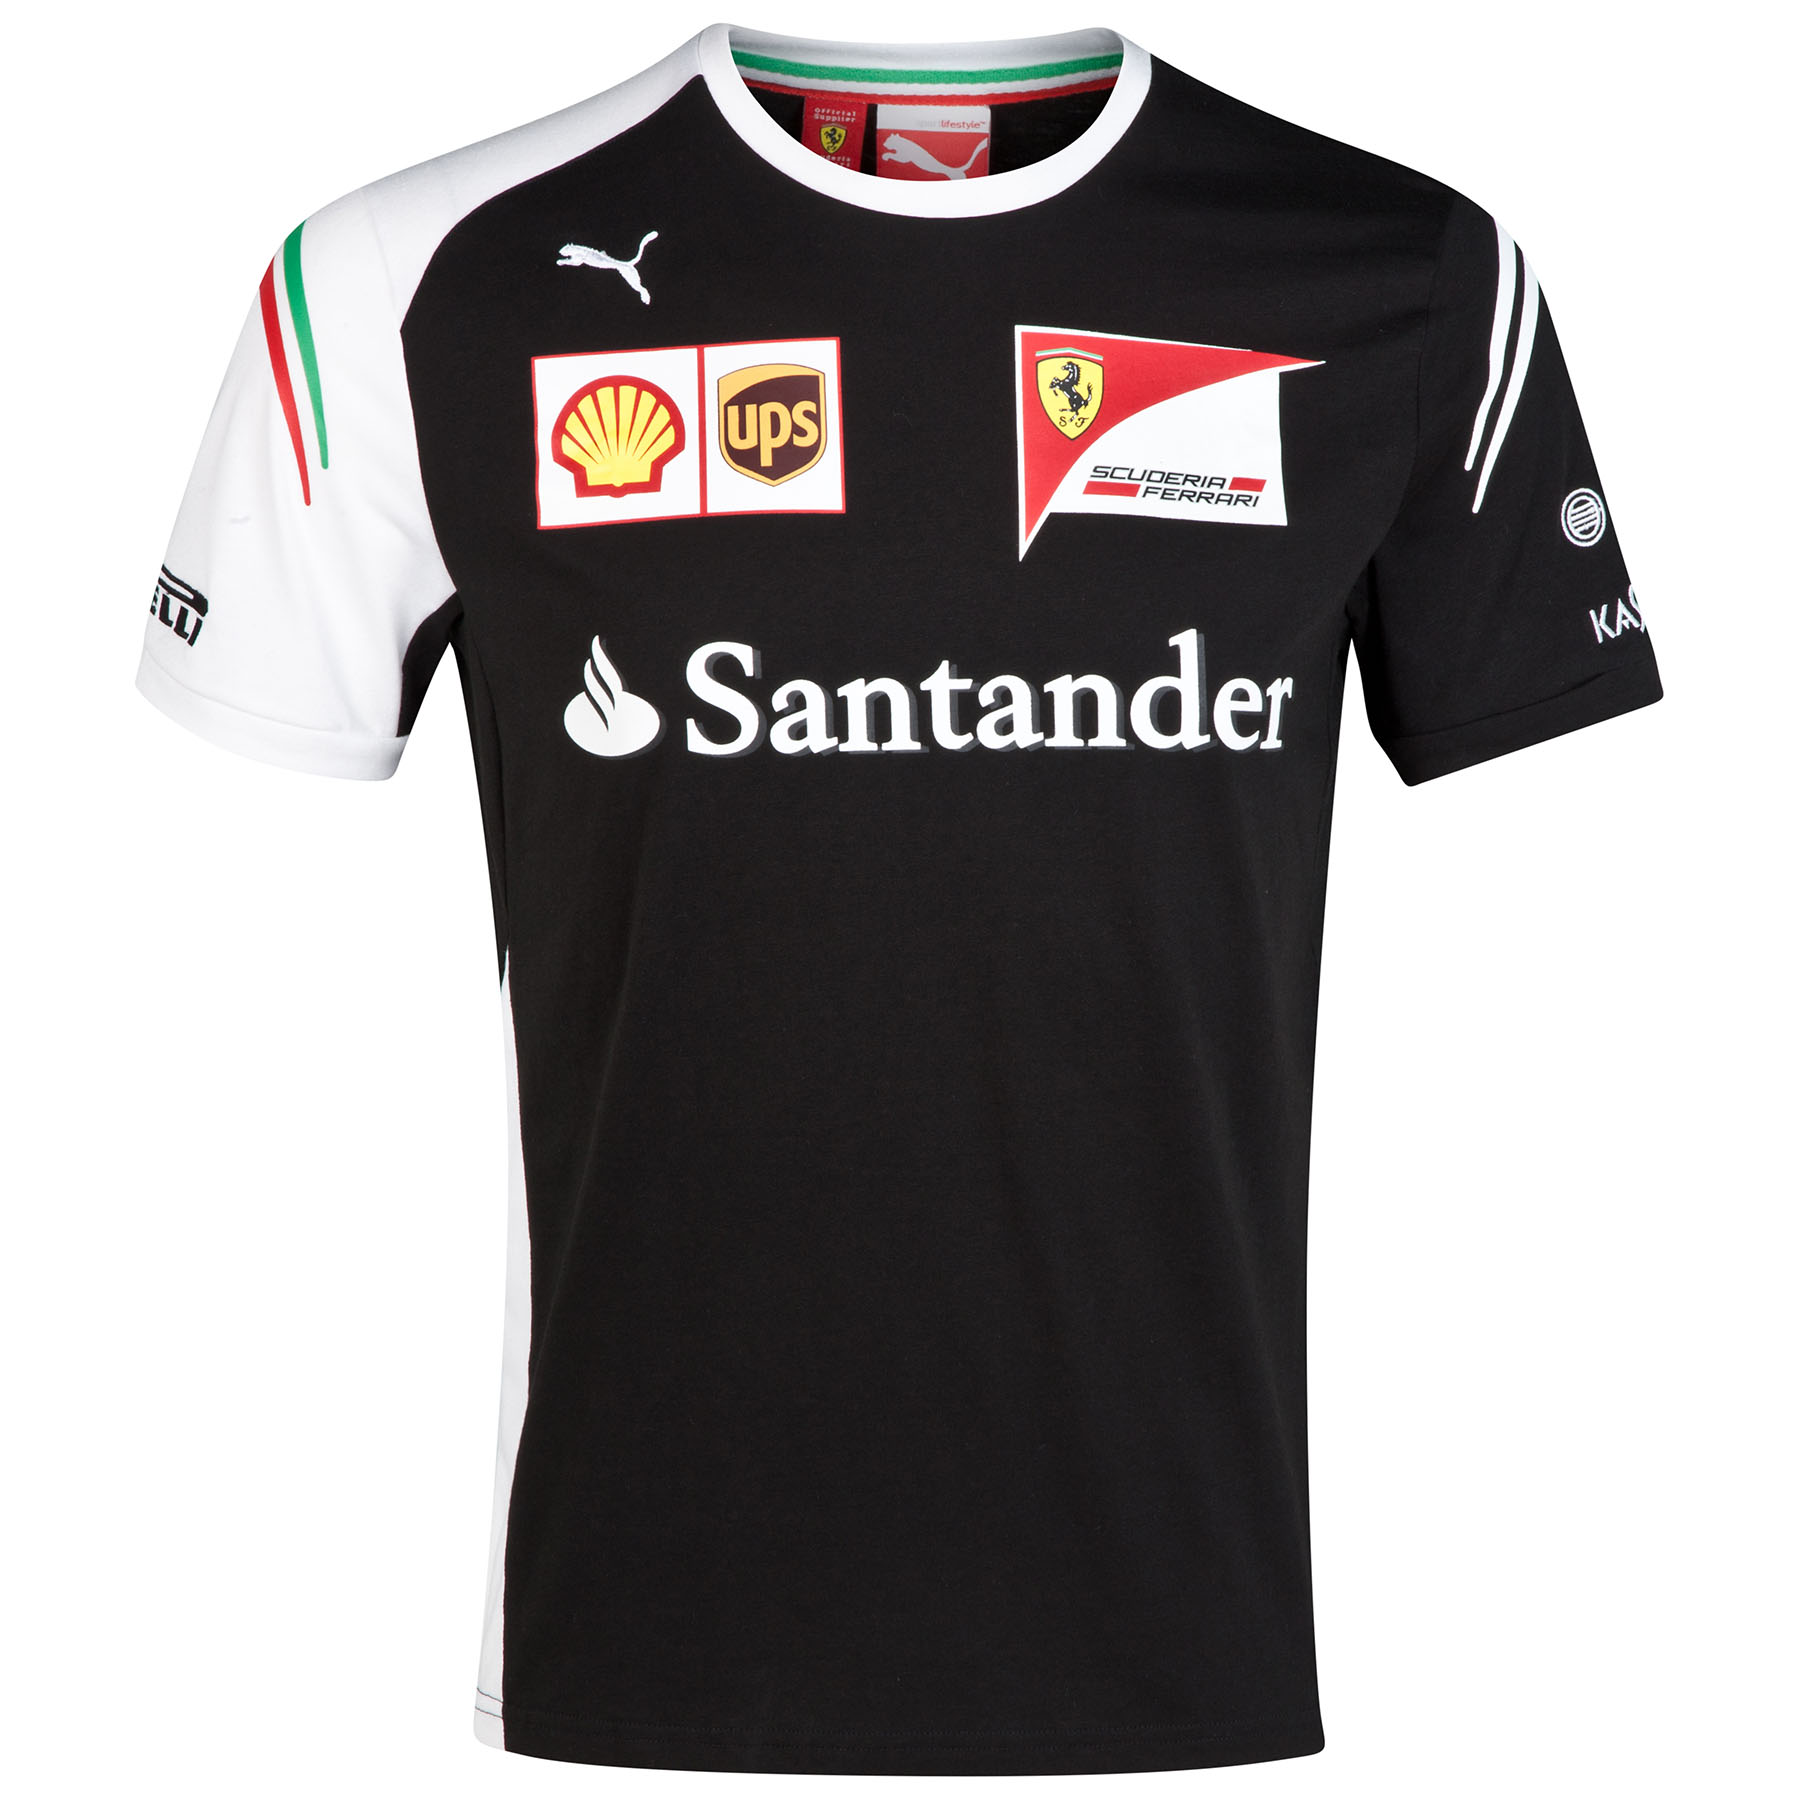 Scuderia Ferrari Team T-Shirt - Black